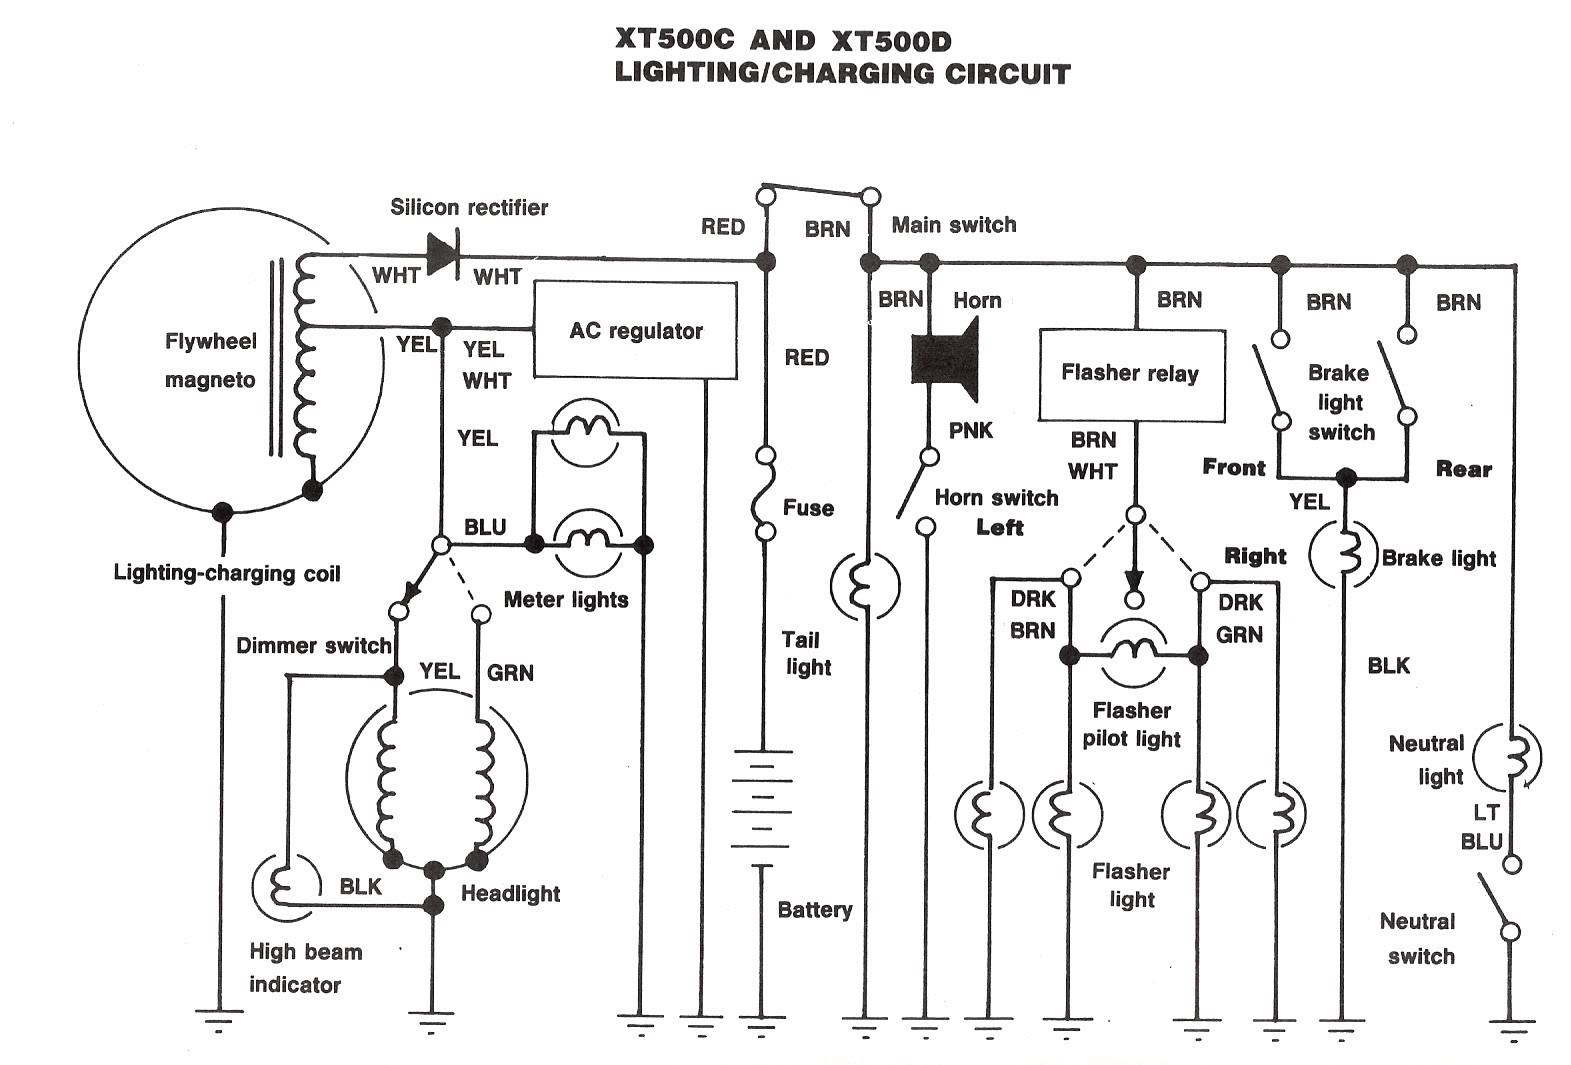 wiring diagram for light switch australia trs jack xt500 electrical2 the us 1980 and 1981